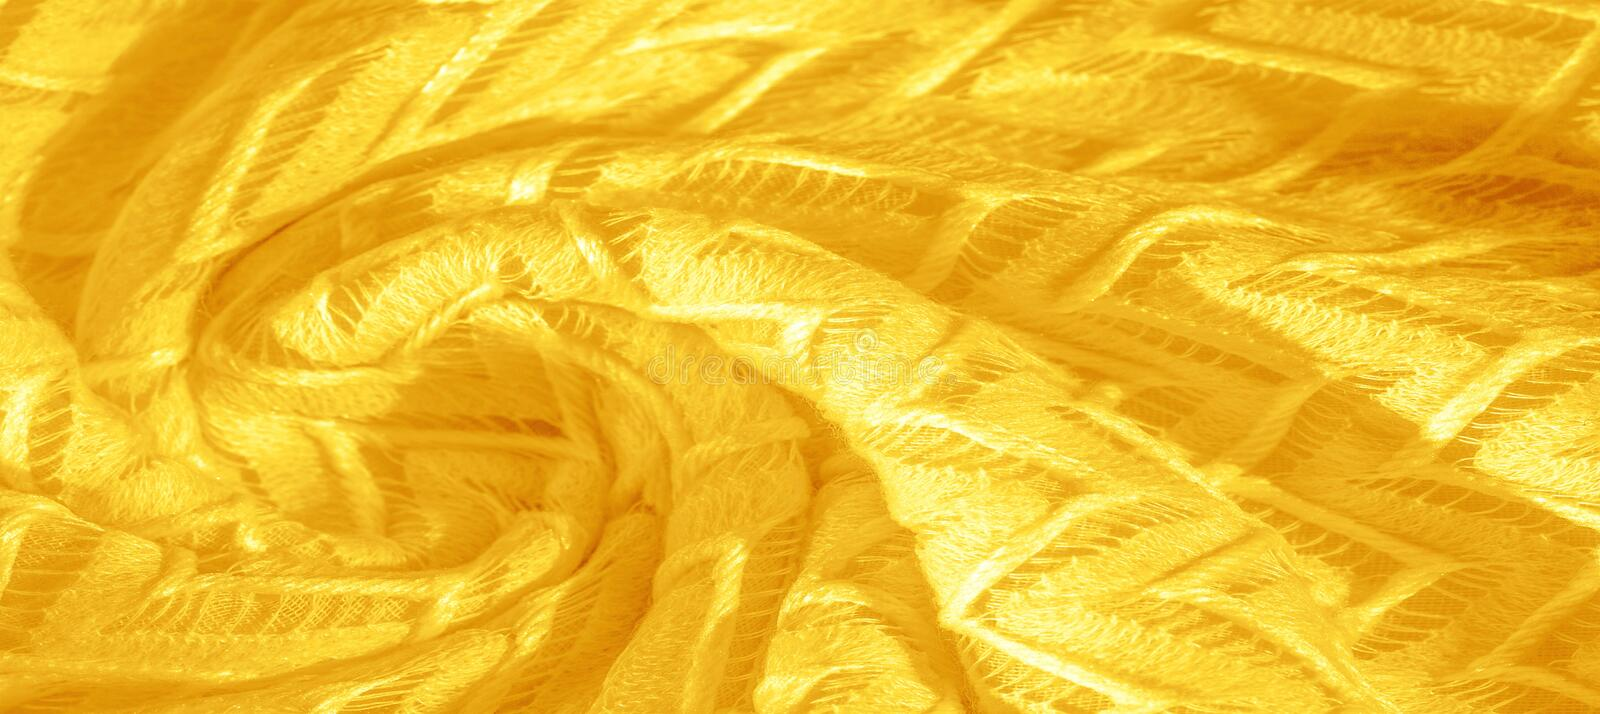 Texture, background, pattern, silk fabric, yellow, layered lace tulle, premium plain winter diamond knitted scarf in the form of. Infinity loops royalty free stock images